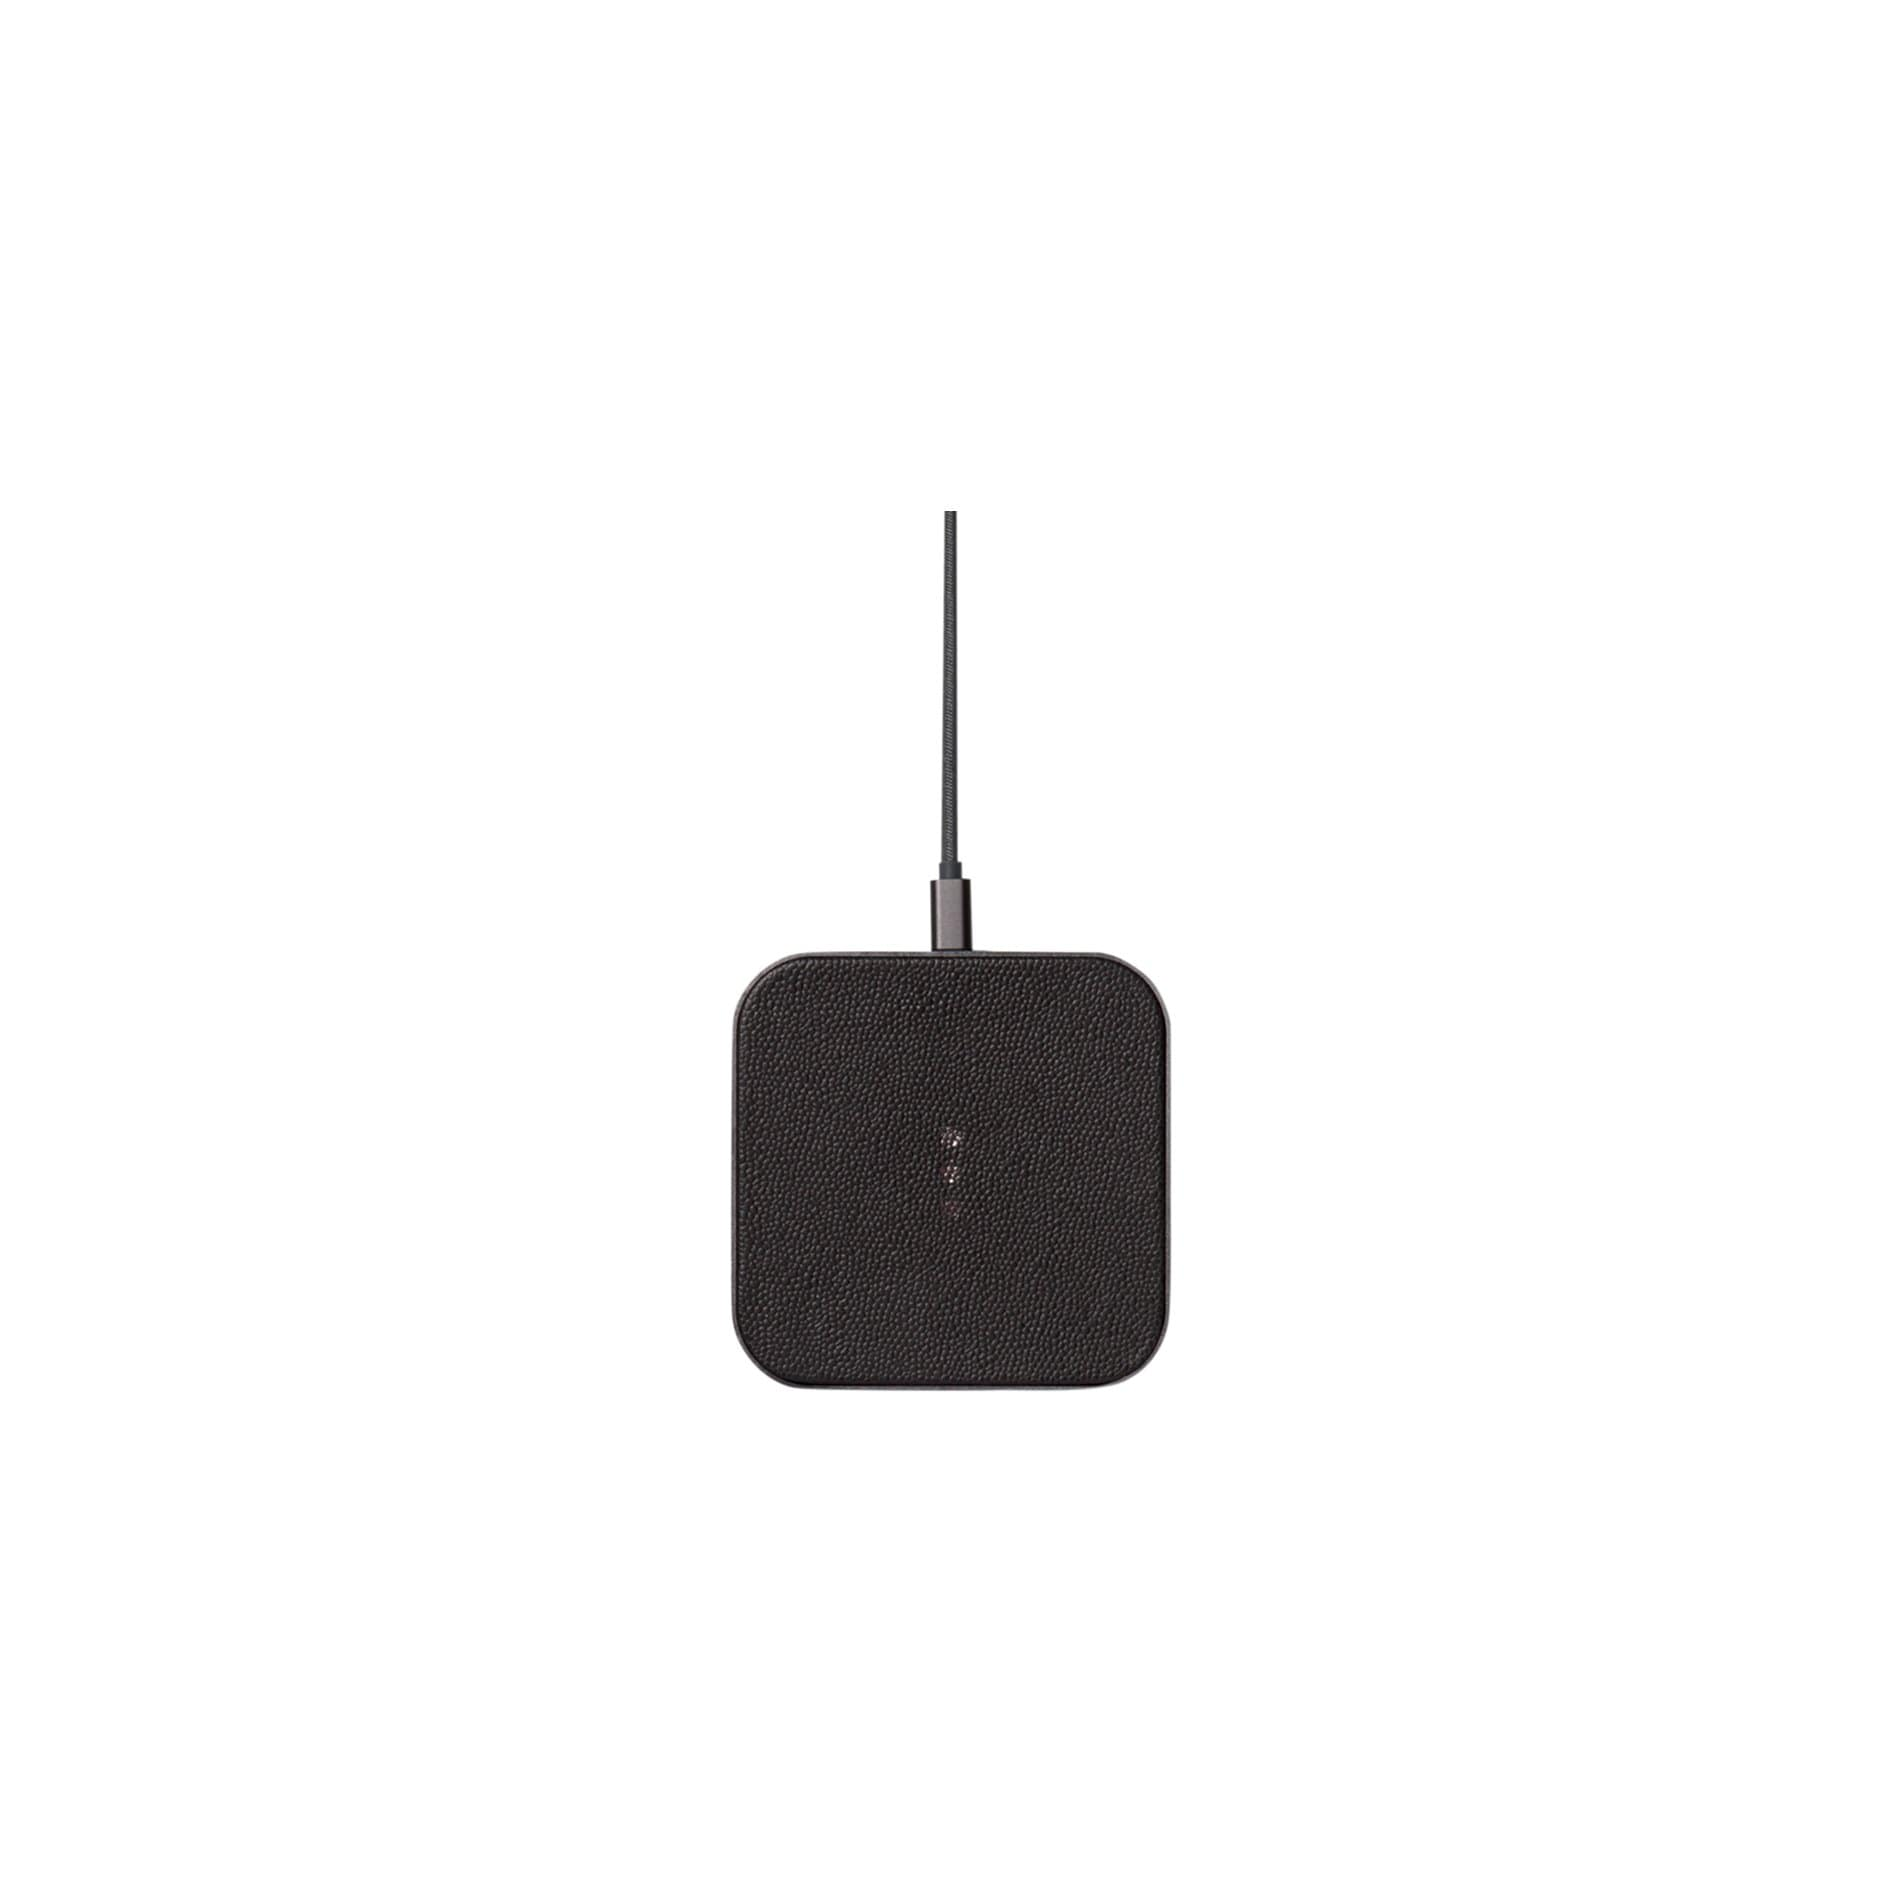 CATCH:1 Wireless Charger in Ash